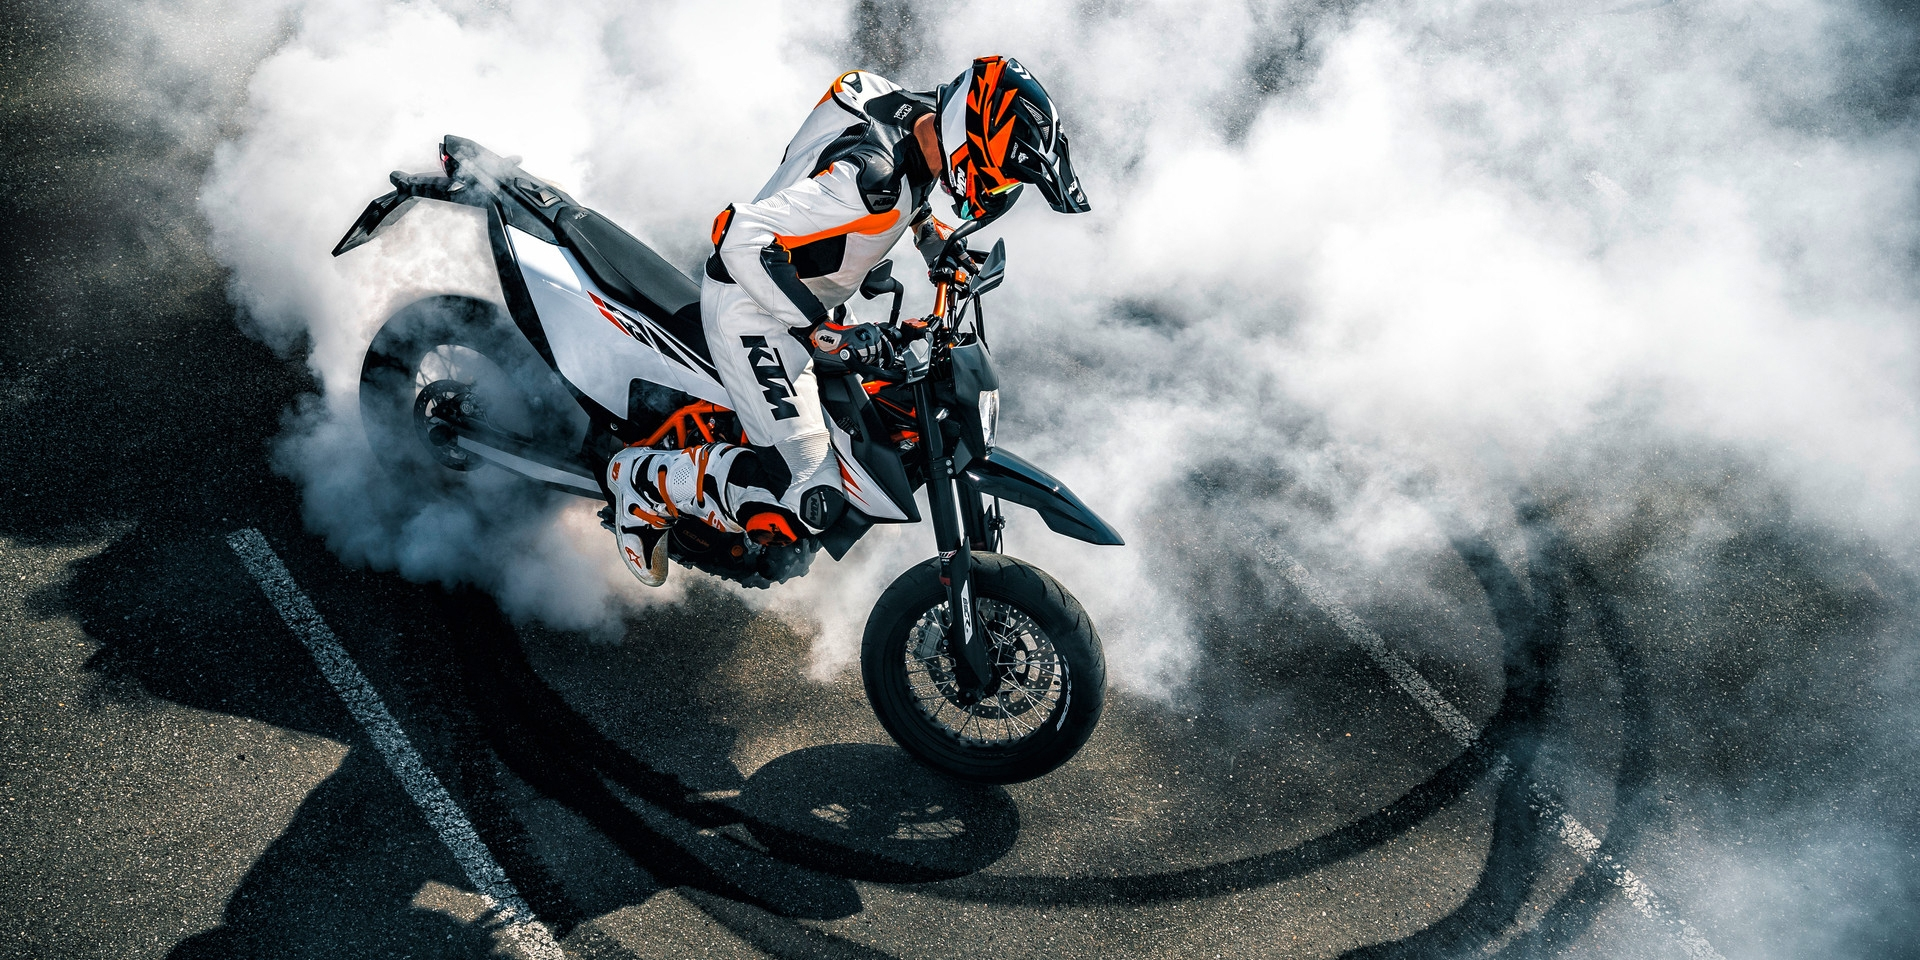 歐洲兄弟滑起來!Supermoto的兩種風情:DUCATI Hypermotard 950 SP vs. KTM 690 SMC-R